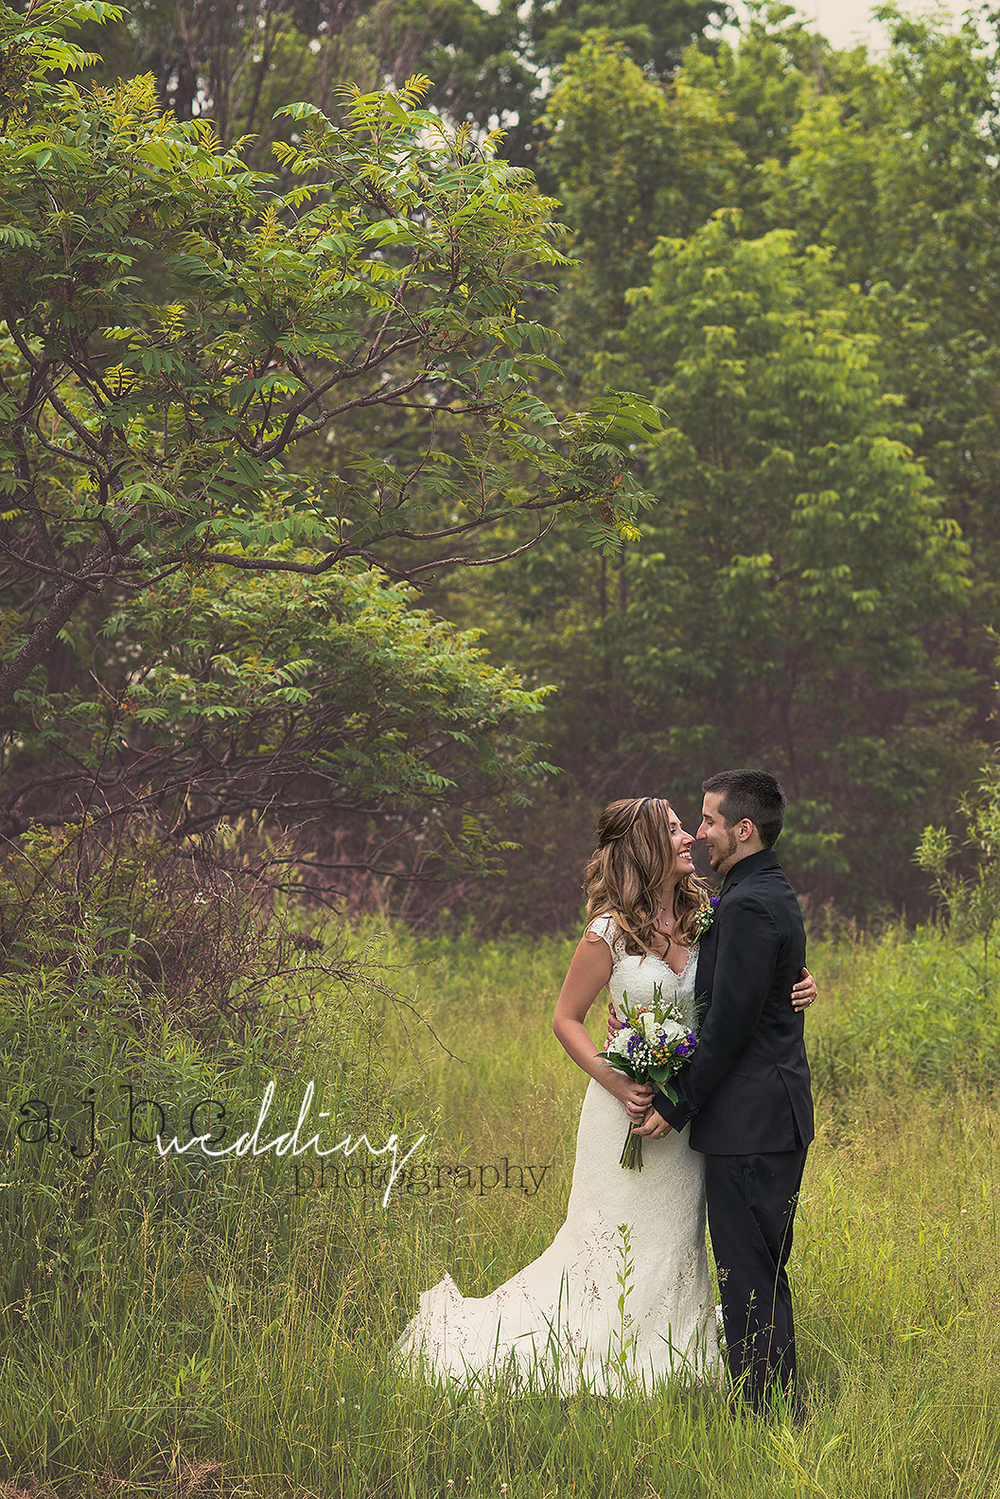 ajbcphotography-port-huron-michigan-wedding-photographer-outdoors-summer-wedding-country-wedding-wadhams-michigan-bride-vintage-wedding-photographer-nature.jpg